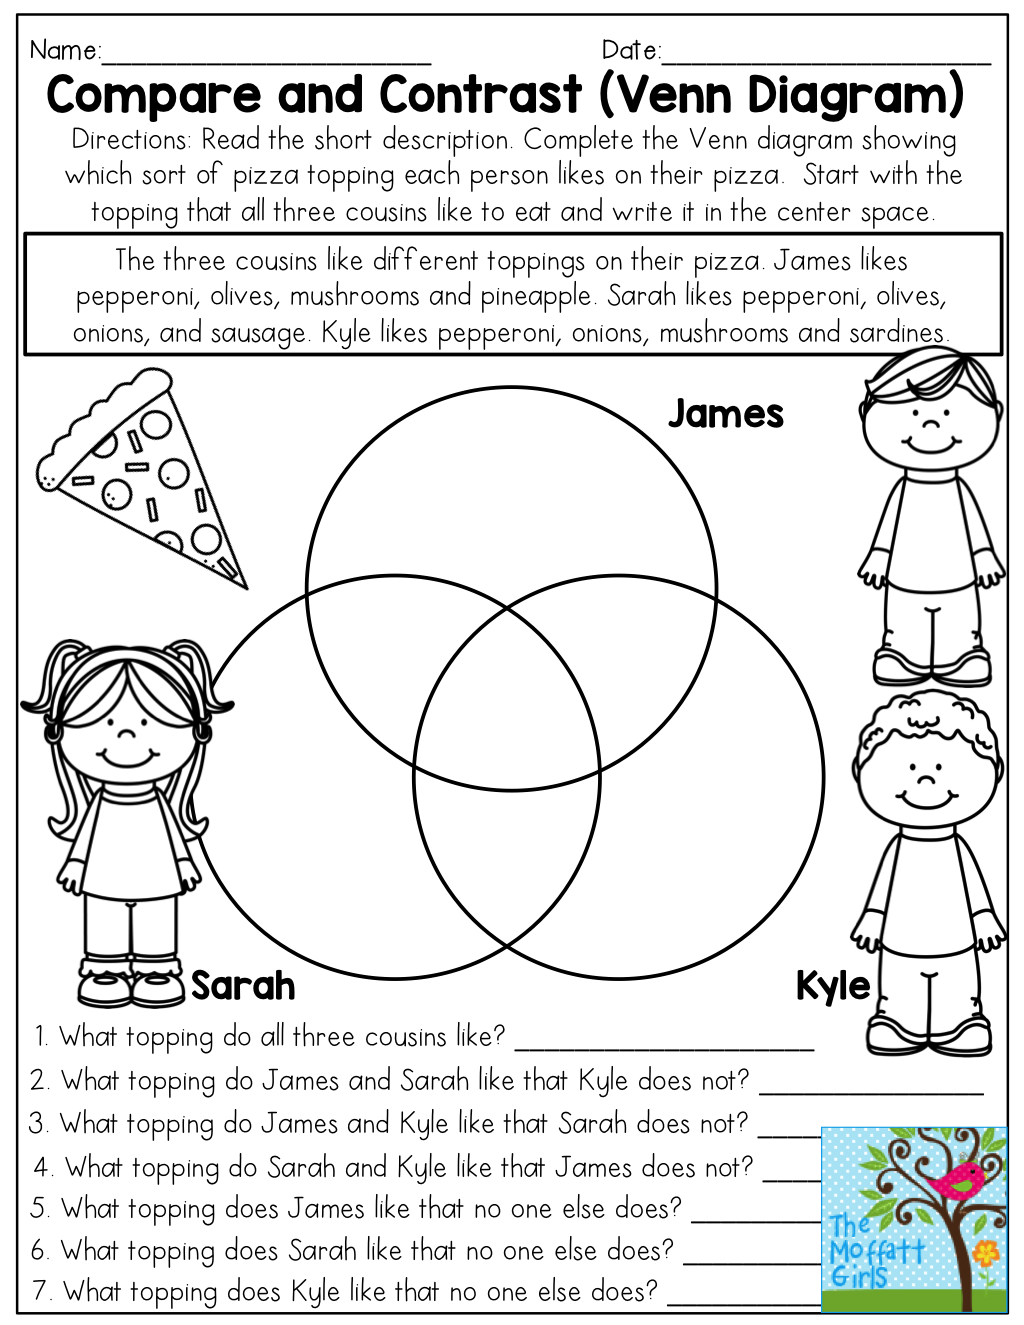 medium resolution of compare and contrast venn diagram 3 things read the short description complete the venn diagram and answer the questions teaching core concepts for 3rd